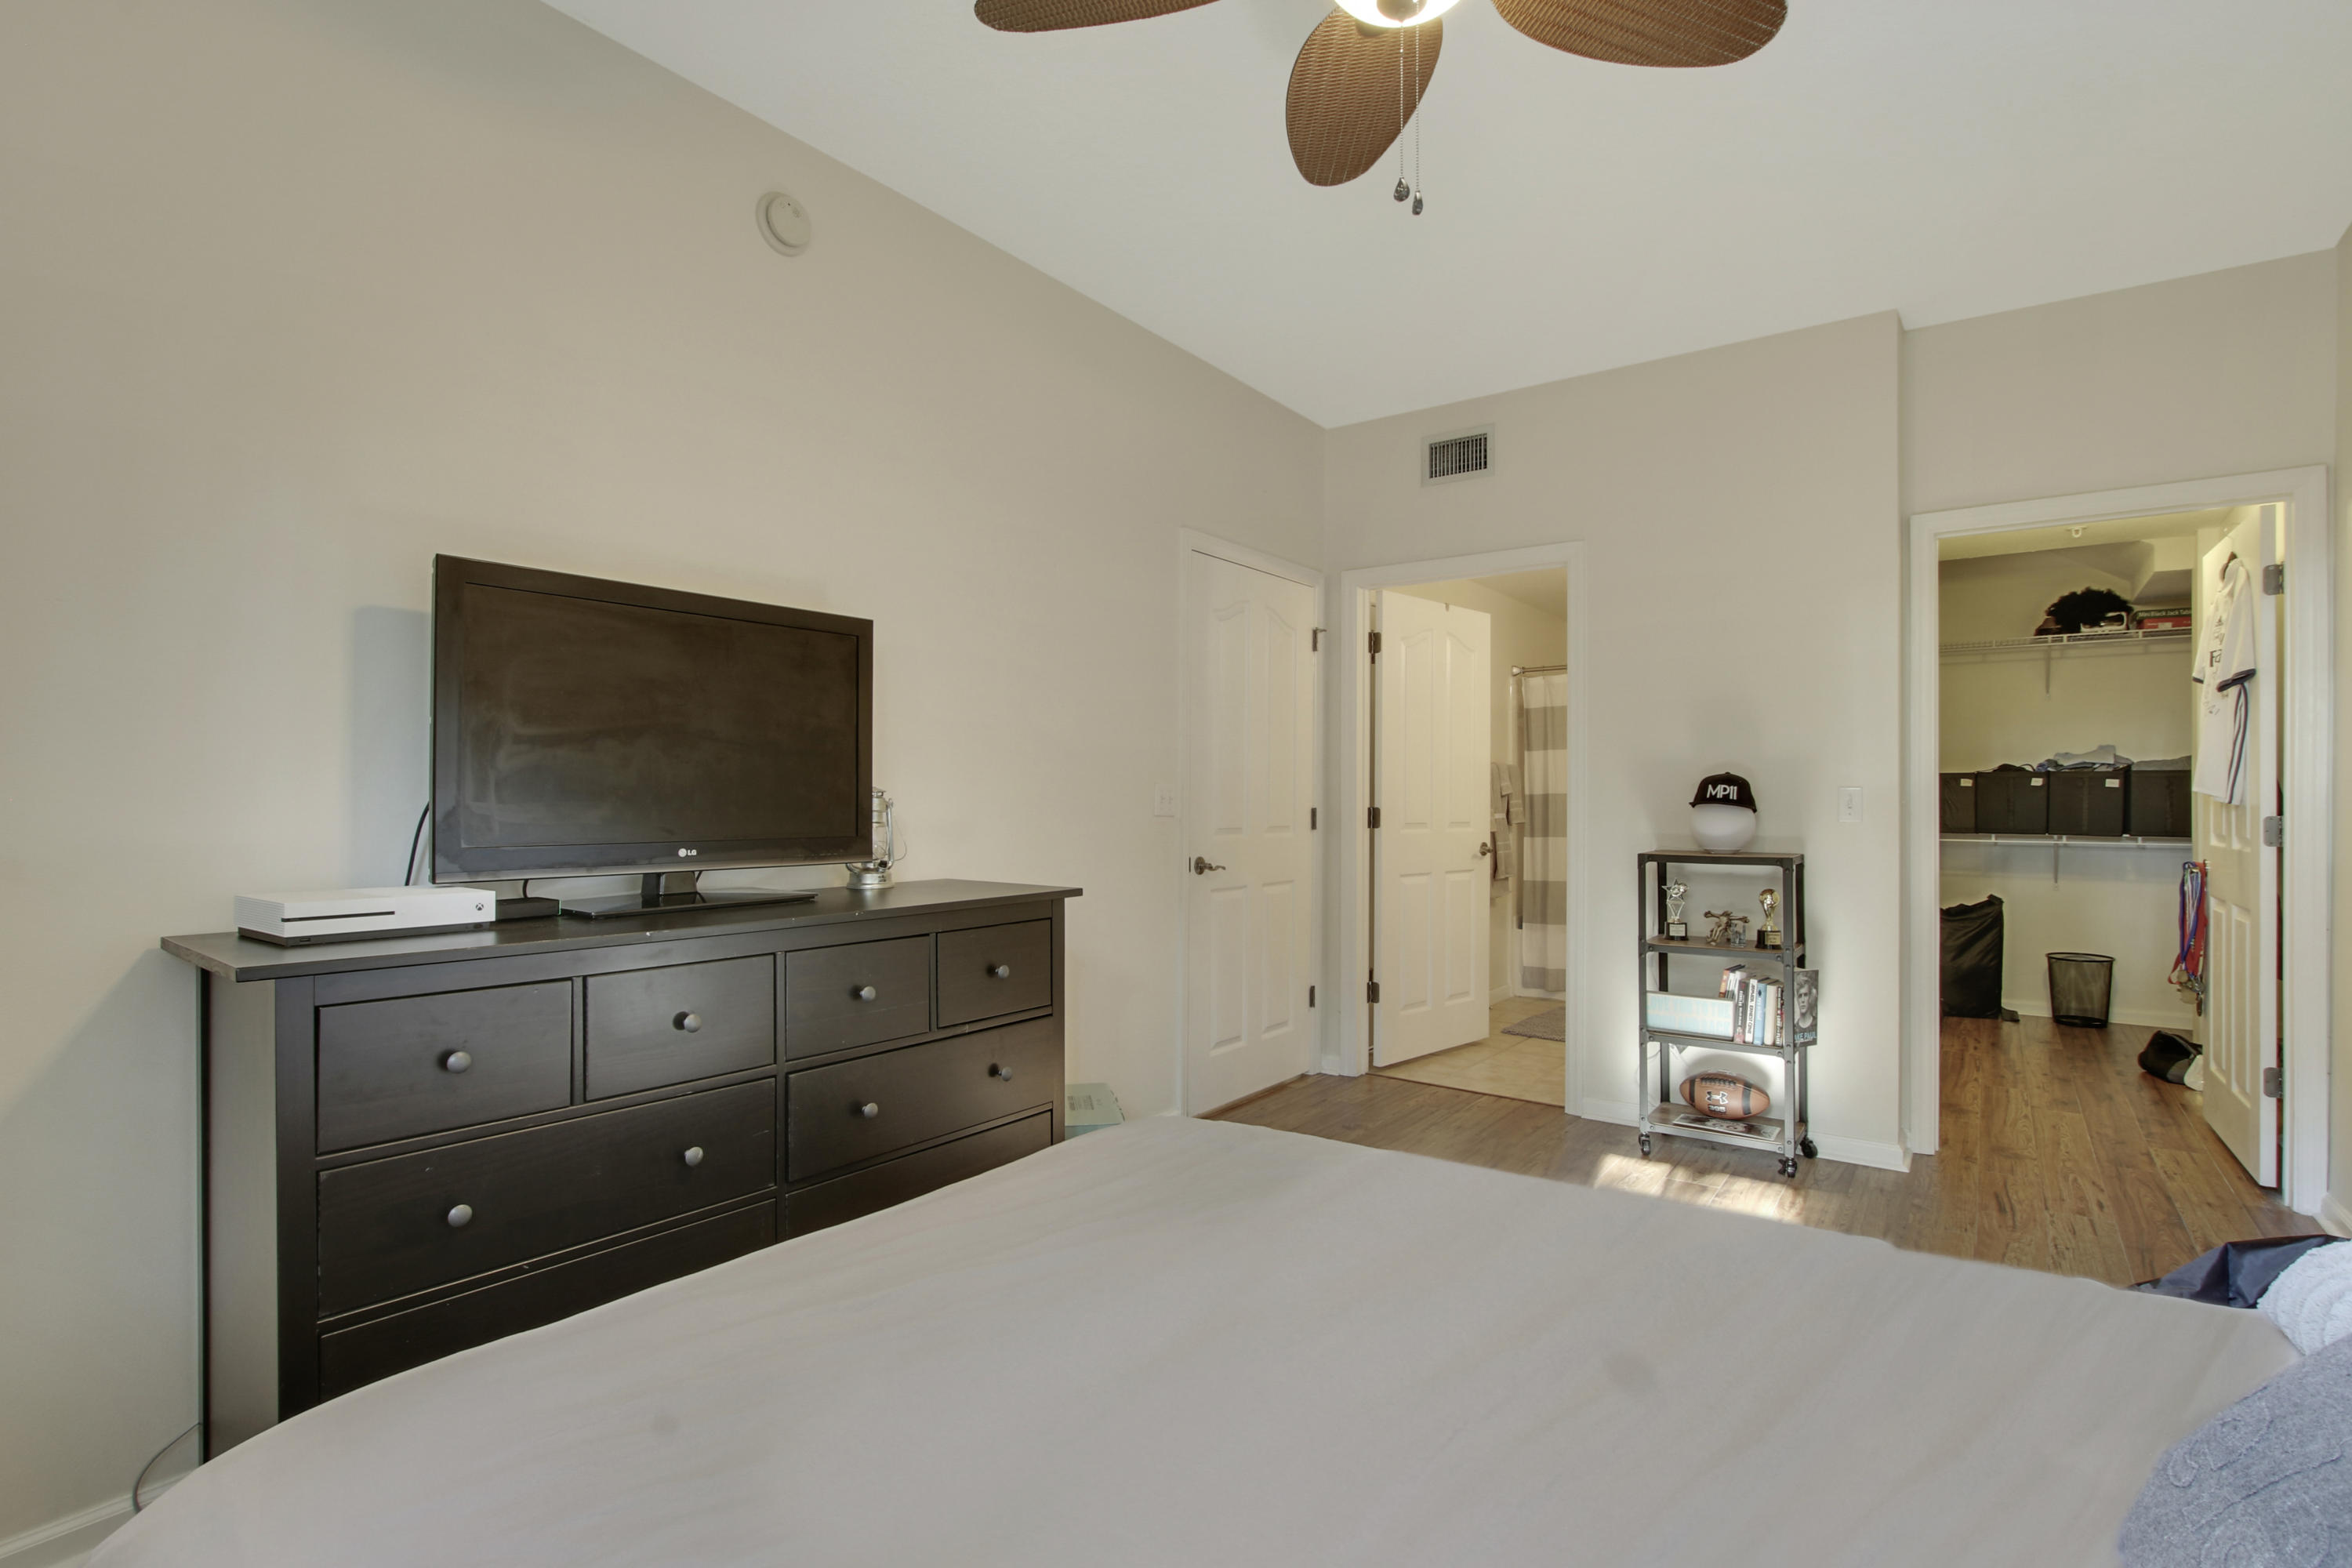 125 Galicia Way 103  - Abacoa Homes - photo 13